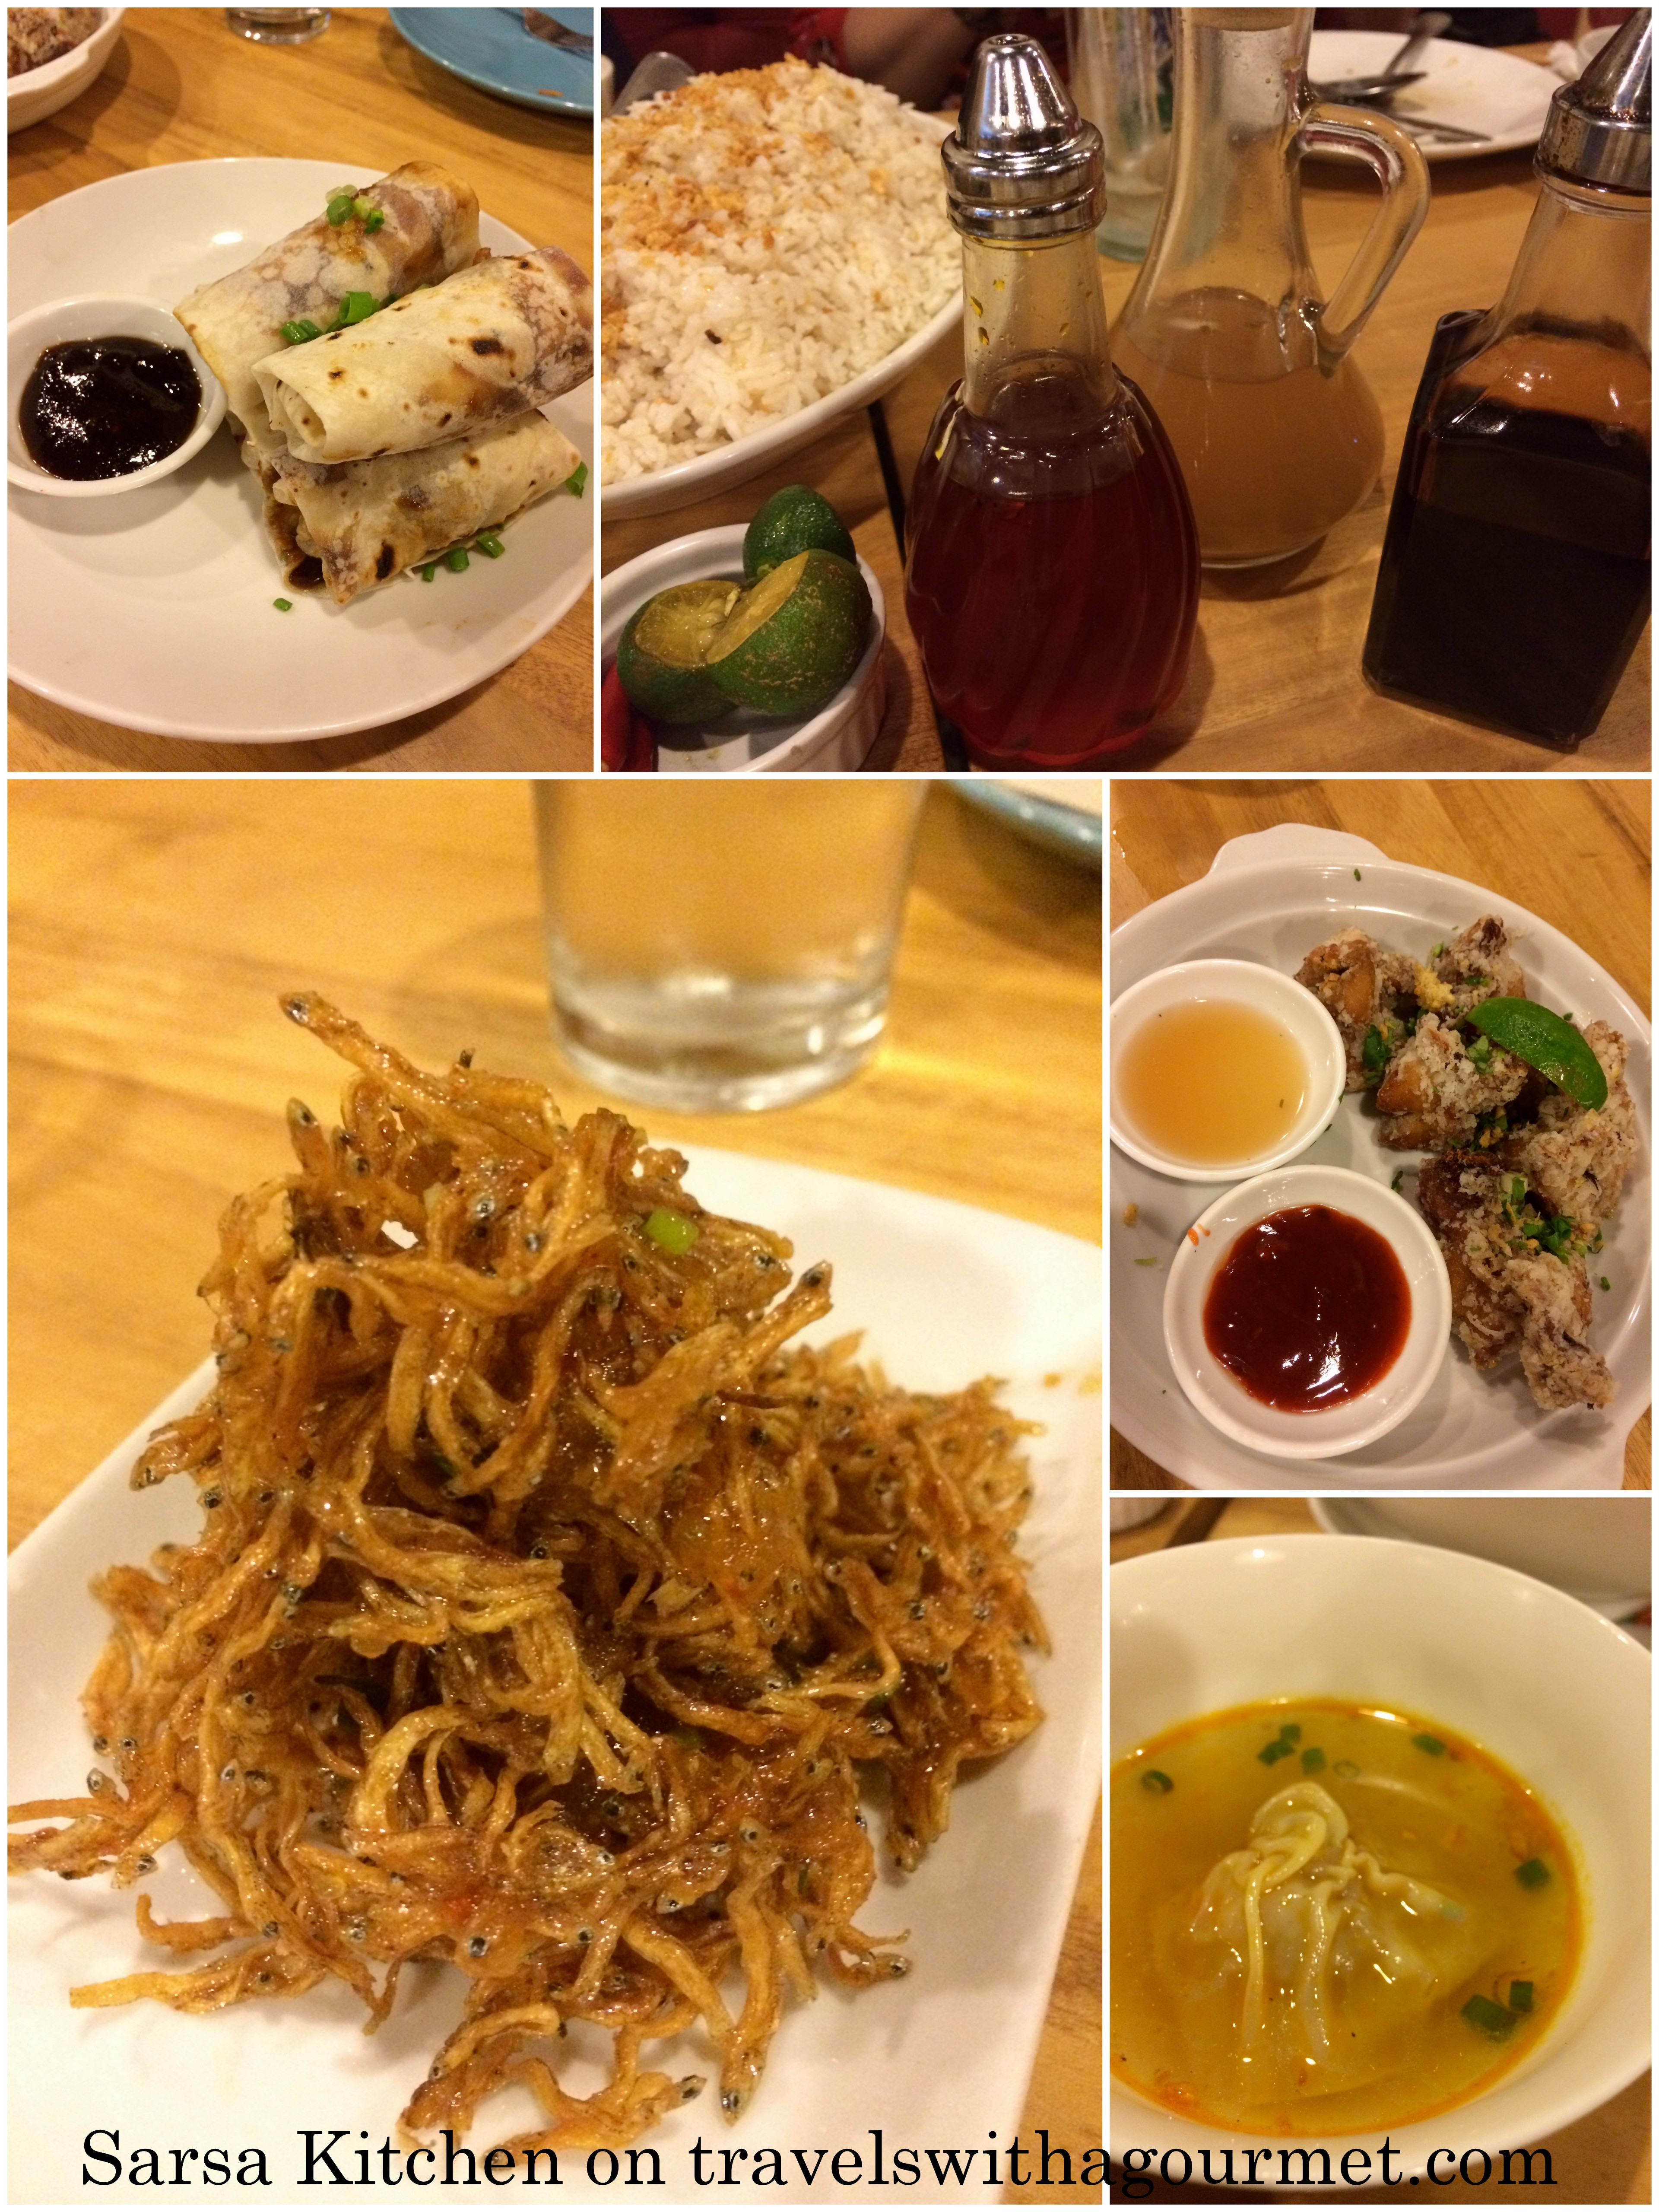 SARSA | Travels with a Gourmet